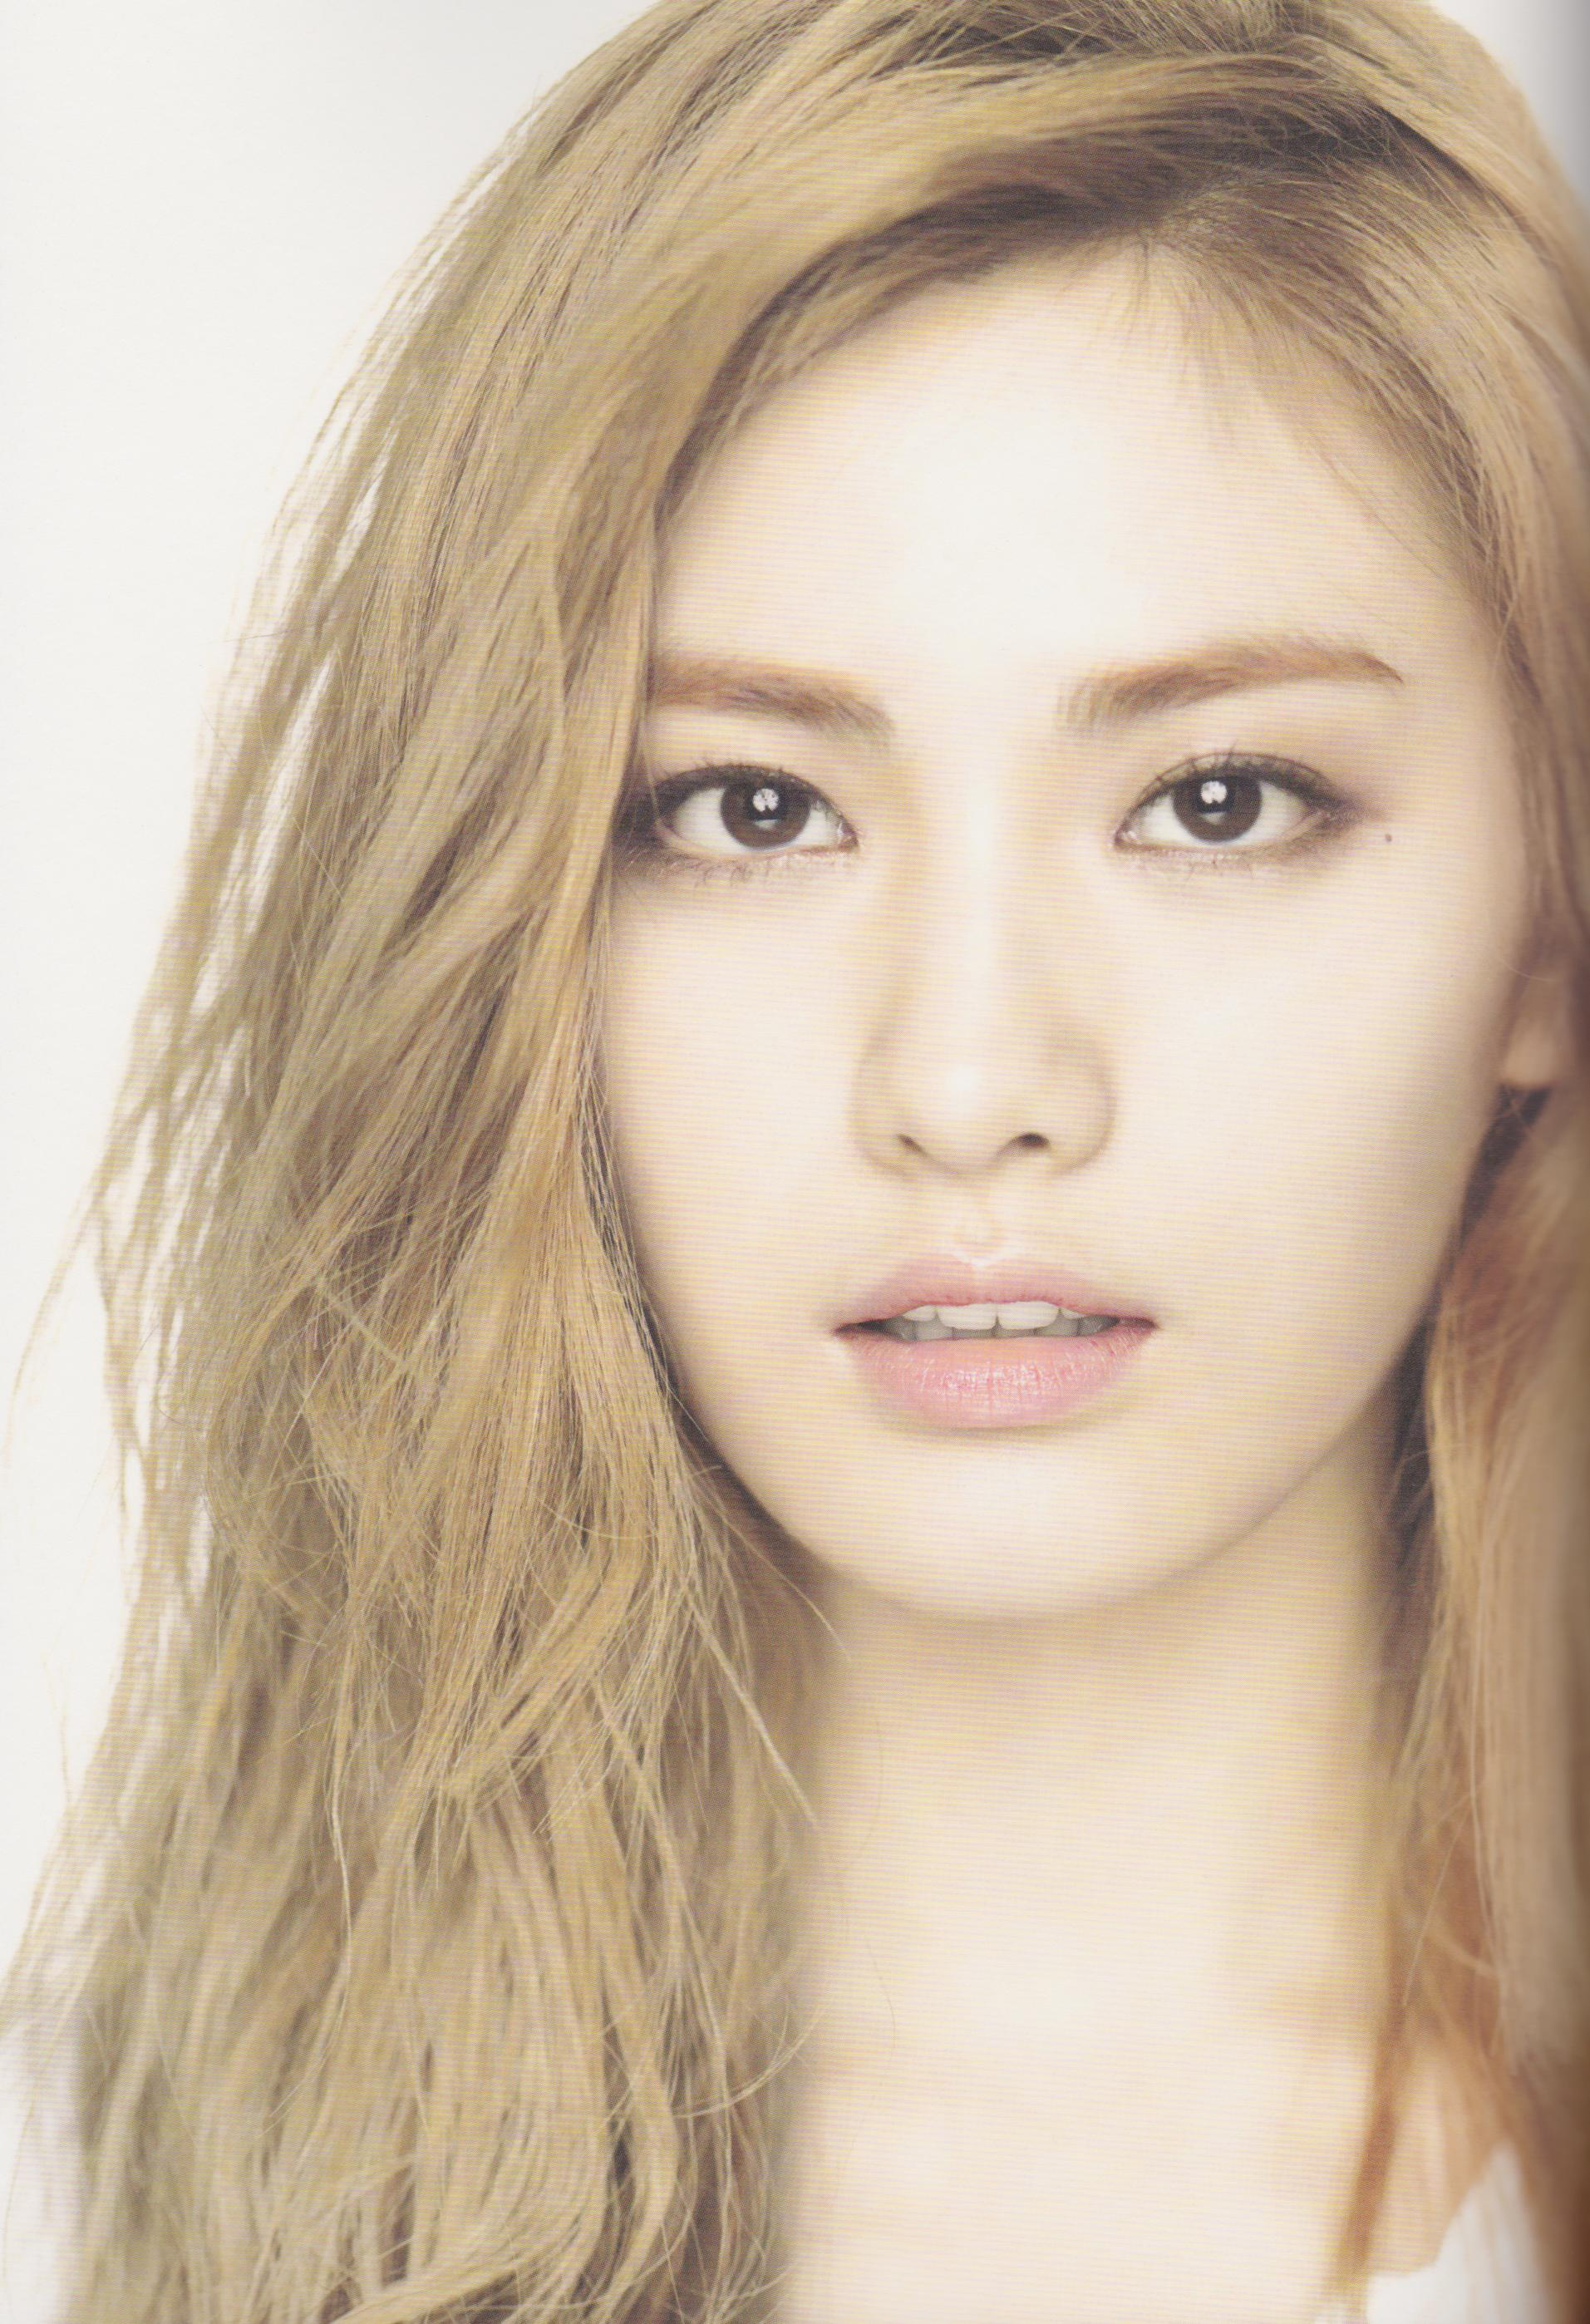 Nana android iphone wallpaper 31117 asiachan kpop image board - After school nana first love ...